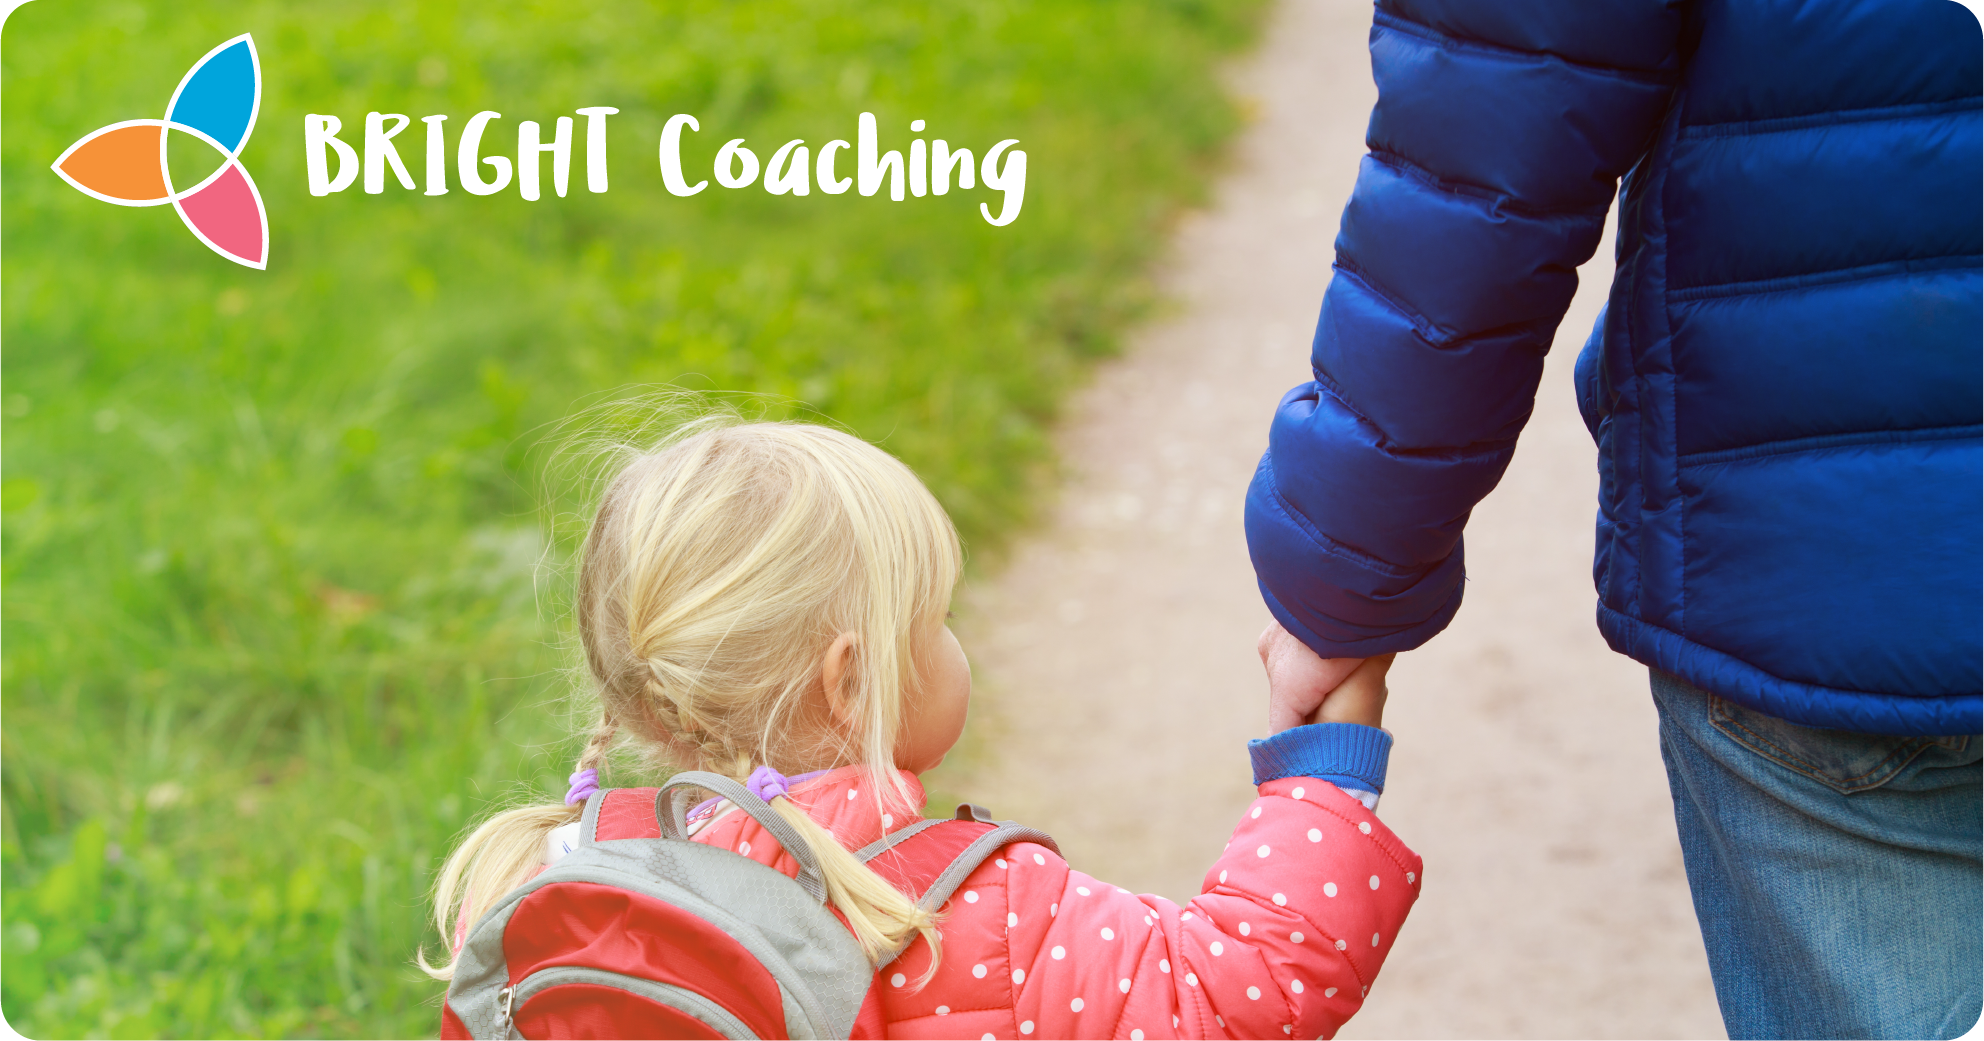 Bright Coaching small child with adult